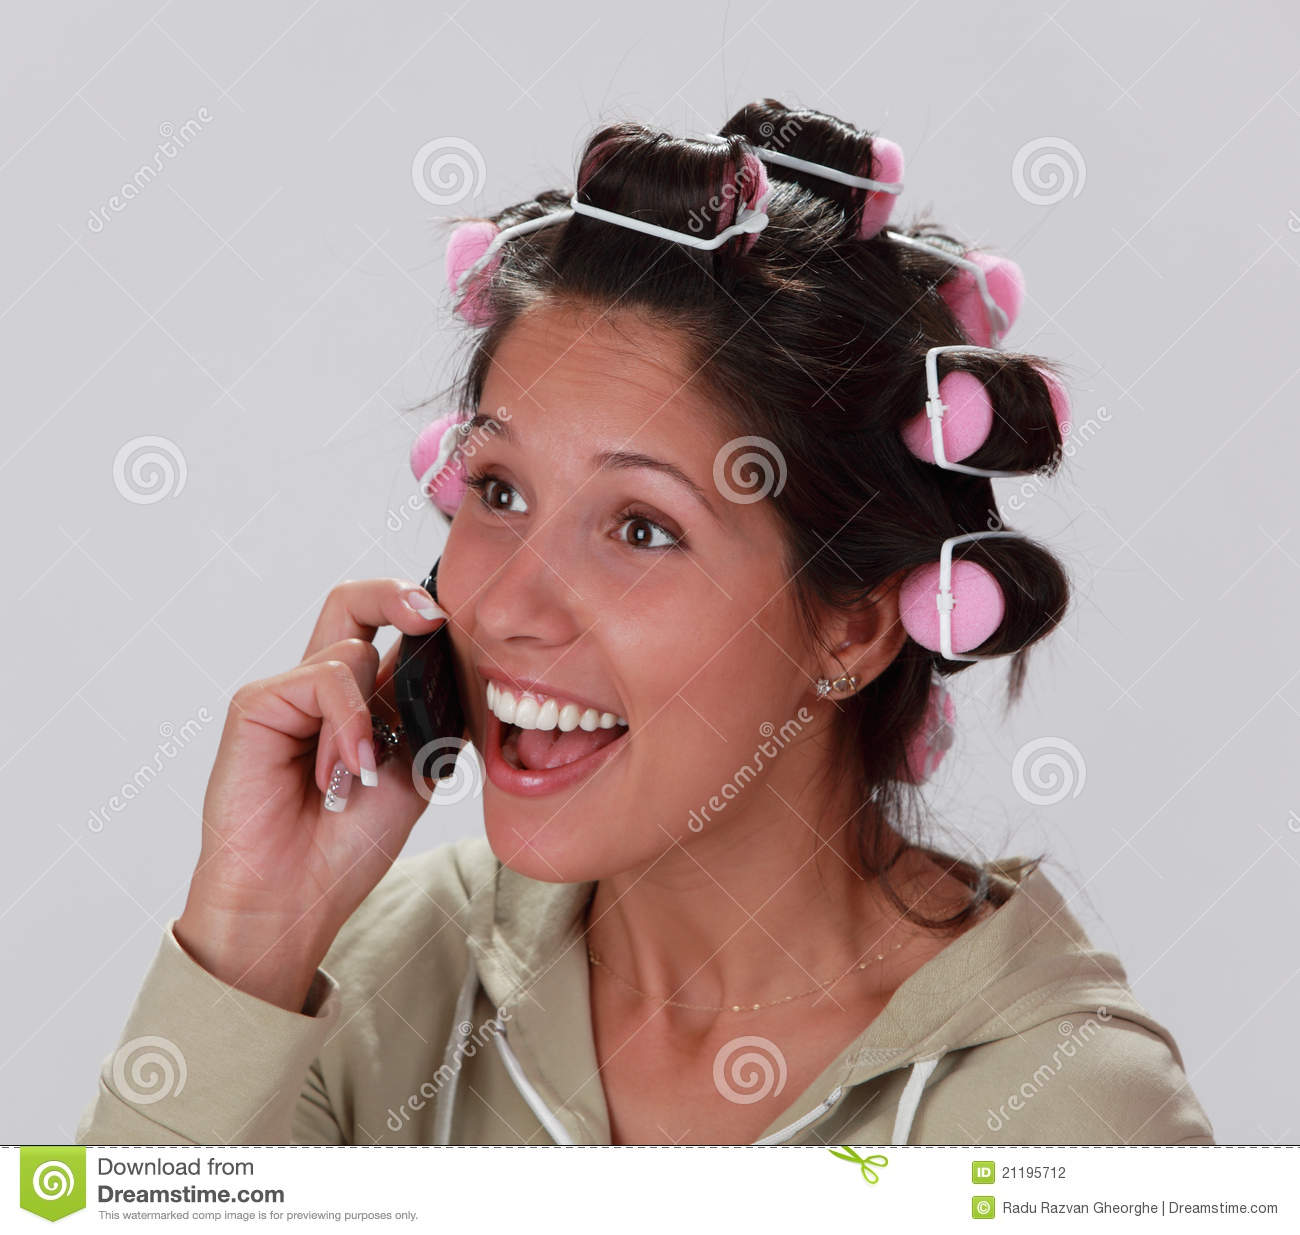 Reaction on the phone